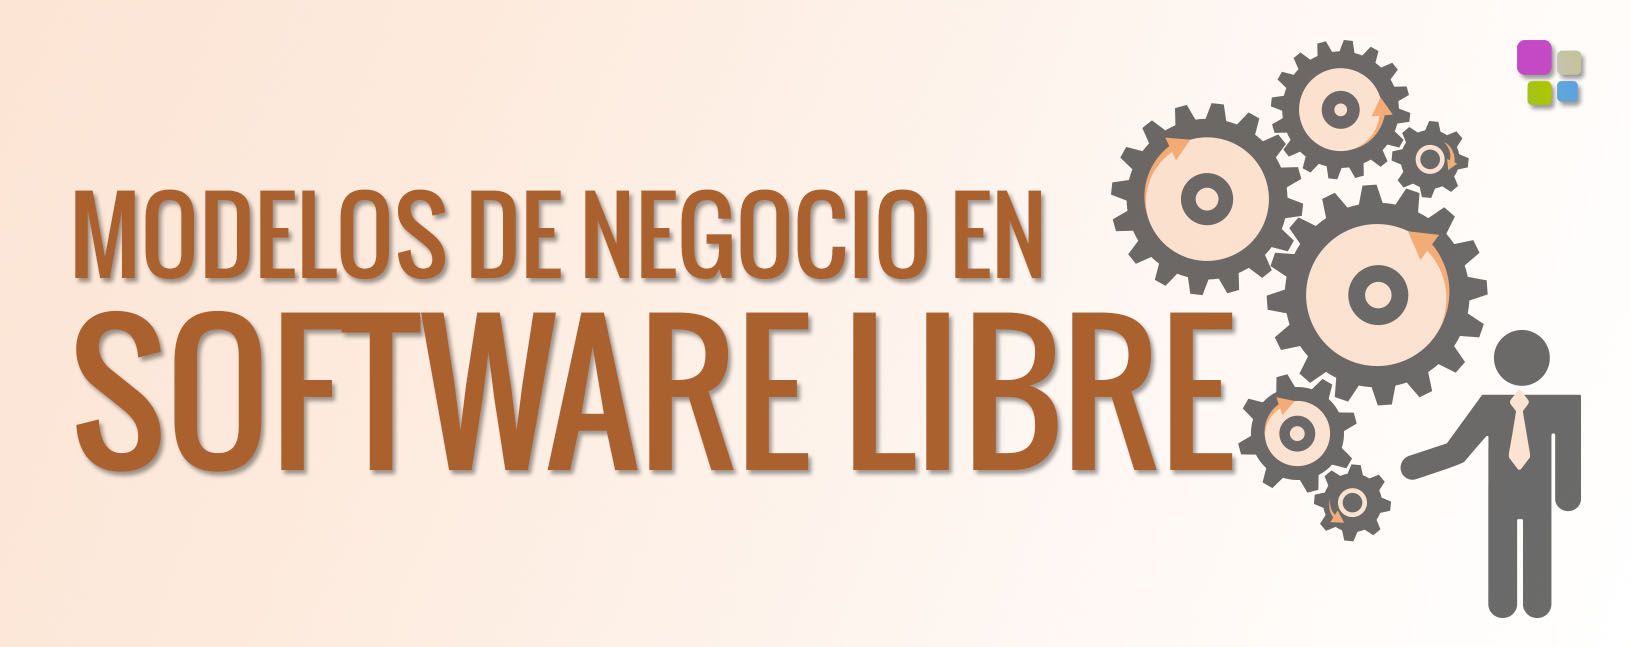 MODELOS DE NEGOCIO EN SOFTWARE LIBRE OPEN SOURCE